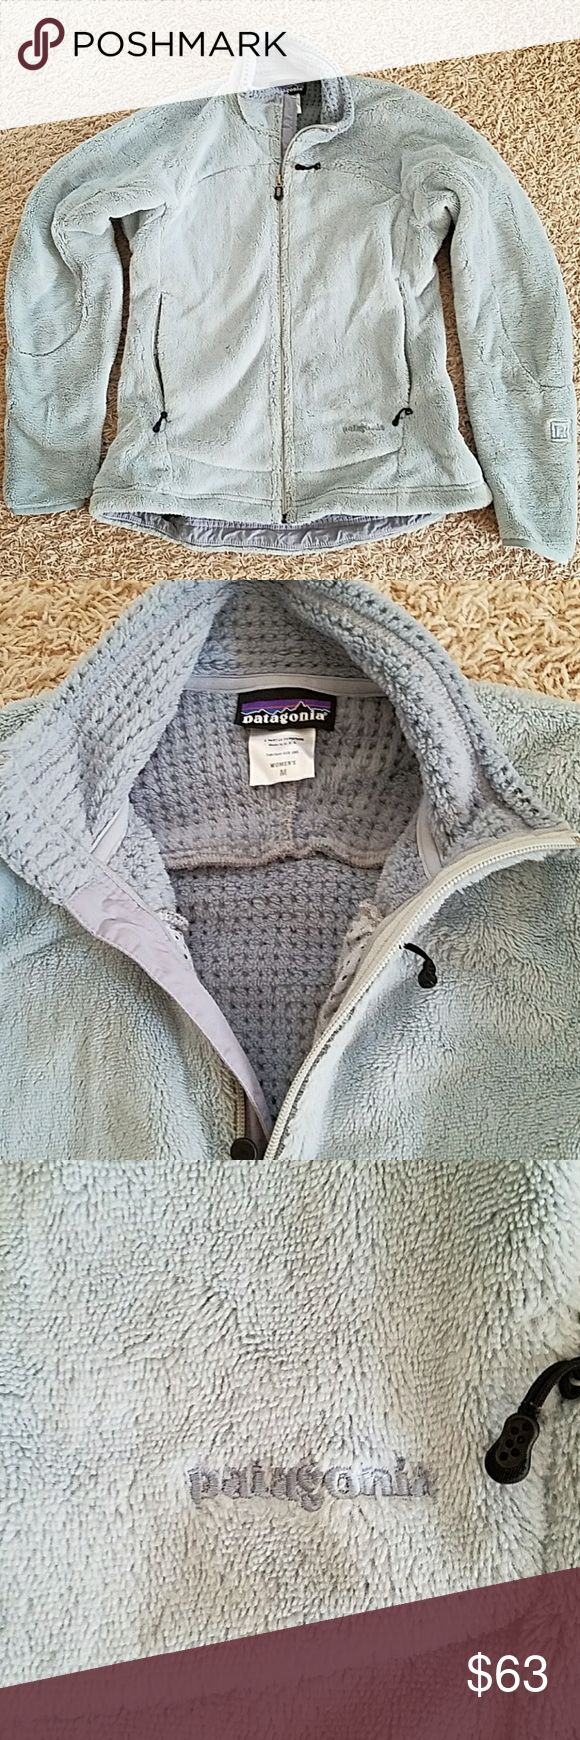 Patagonia fleece jacket Thick winter Patagonia fleece, light blue. Great condition. Patagonia Jackets & Coats